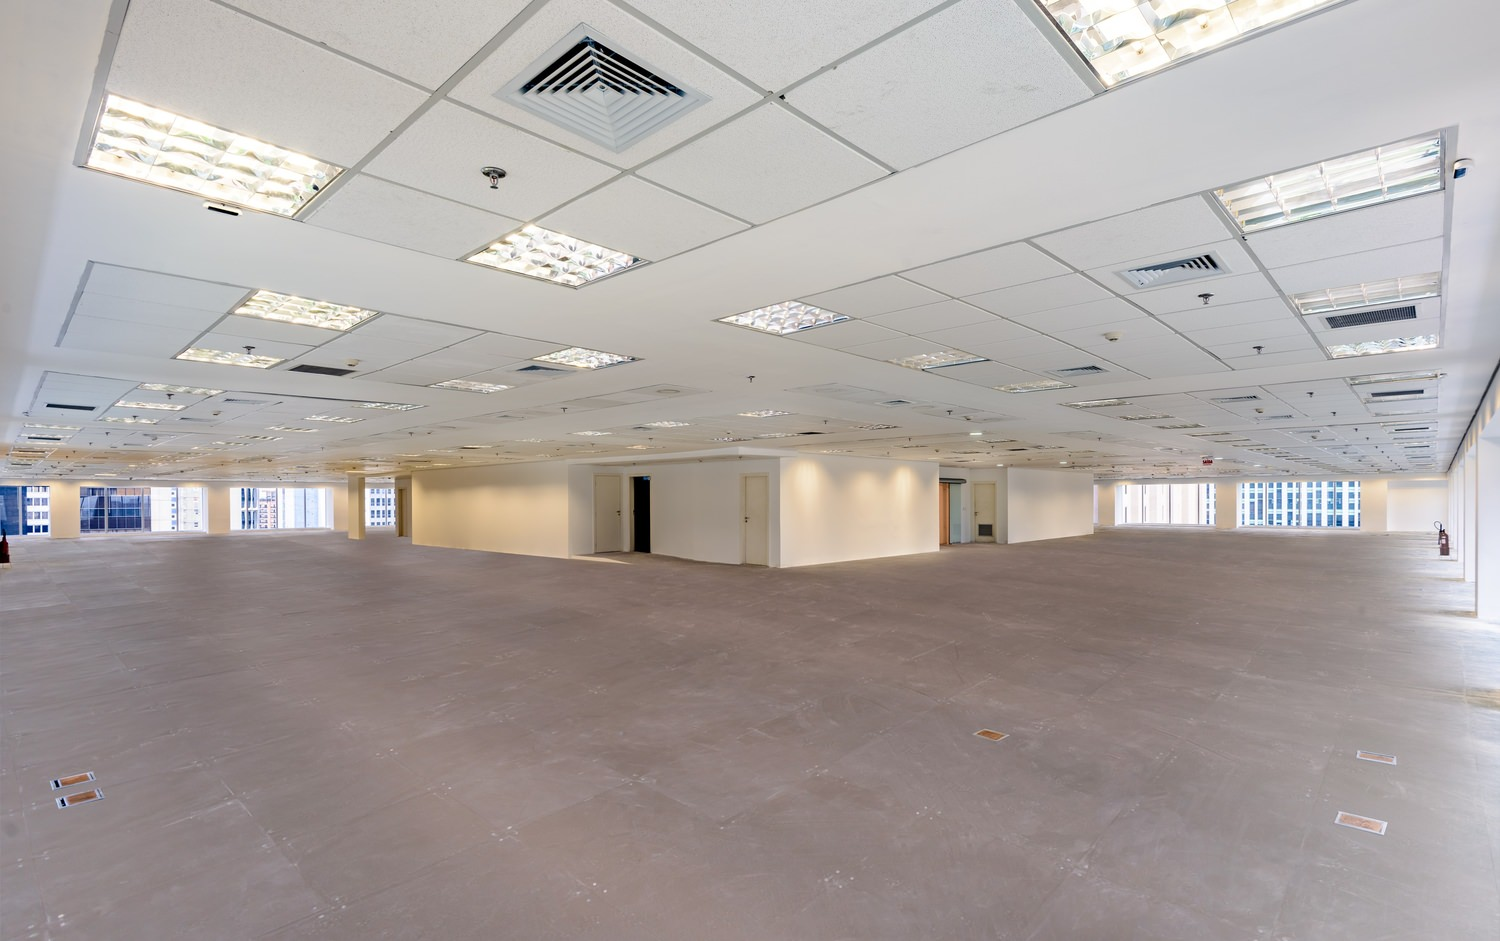 An empty office building that has a white drop ceiling and concrete flooring as well as lighting in the ceiling.